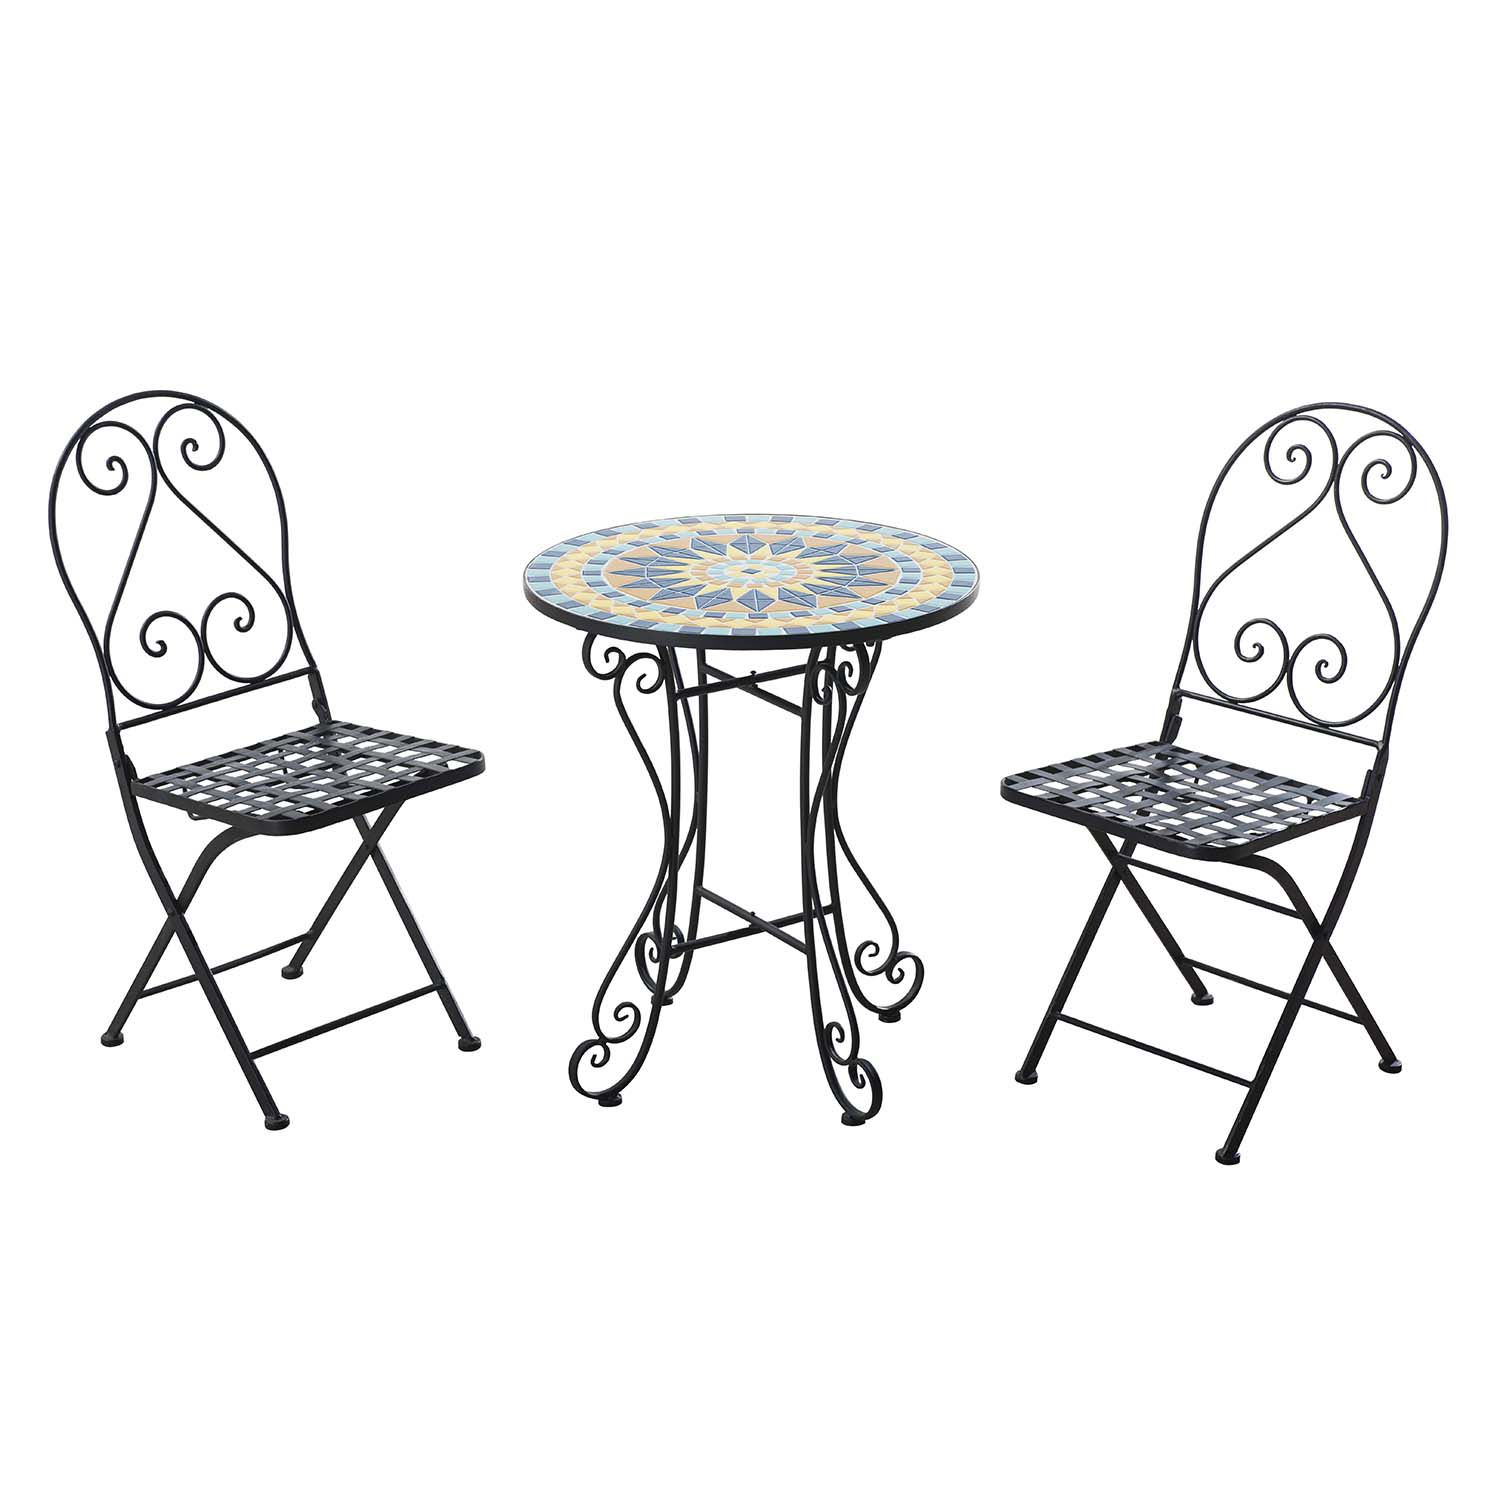 Sunjoy Mosaic Bistro Table 3 Piece Set